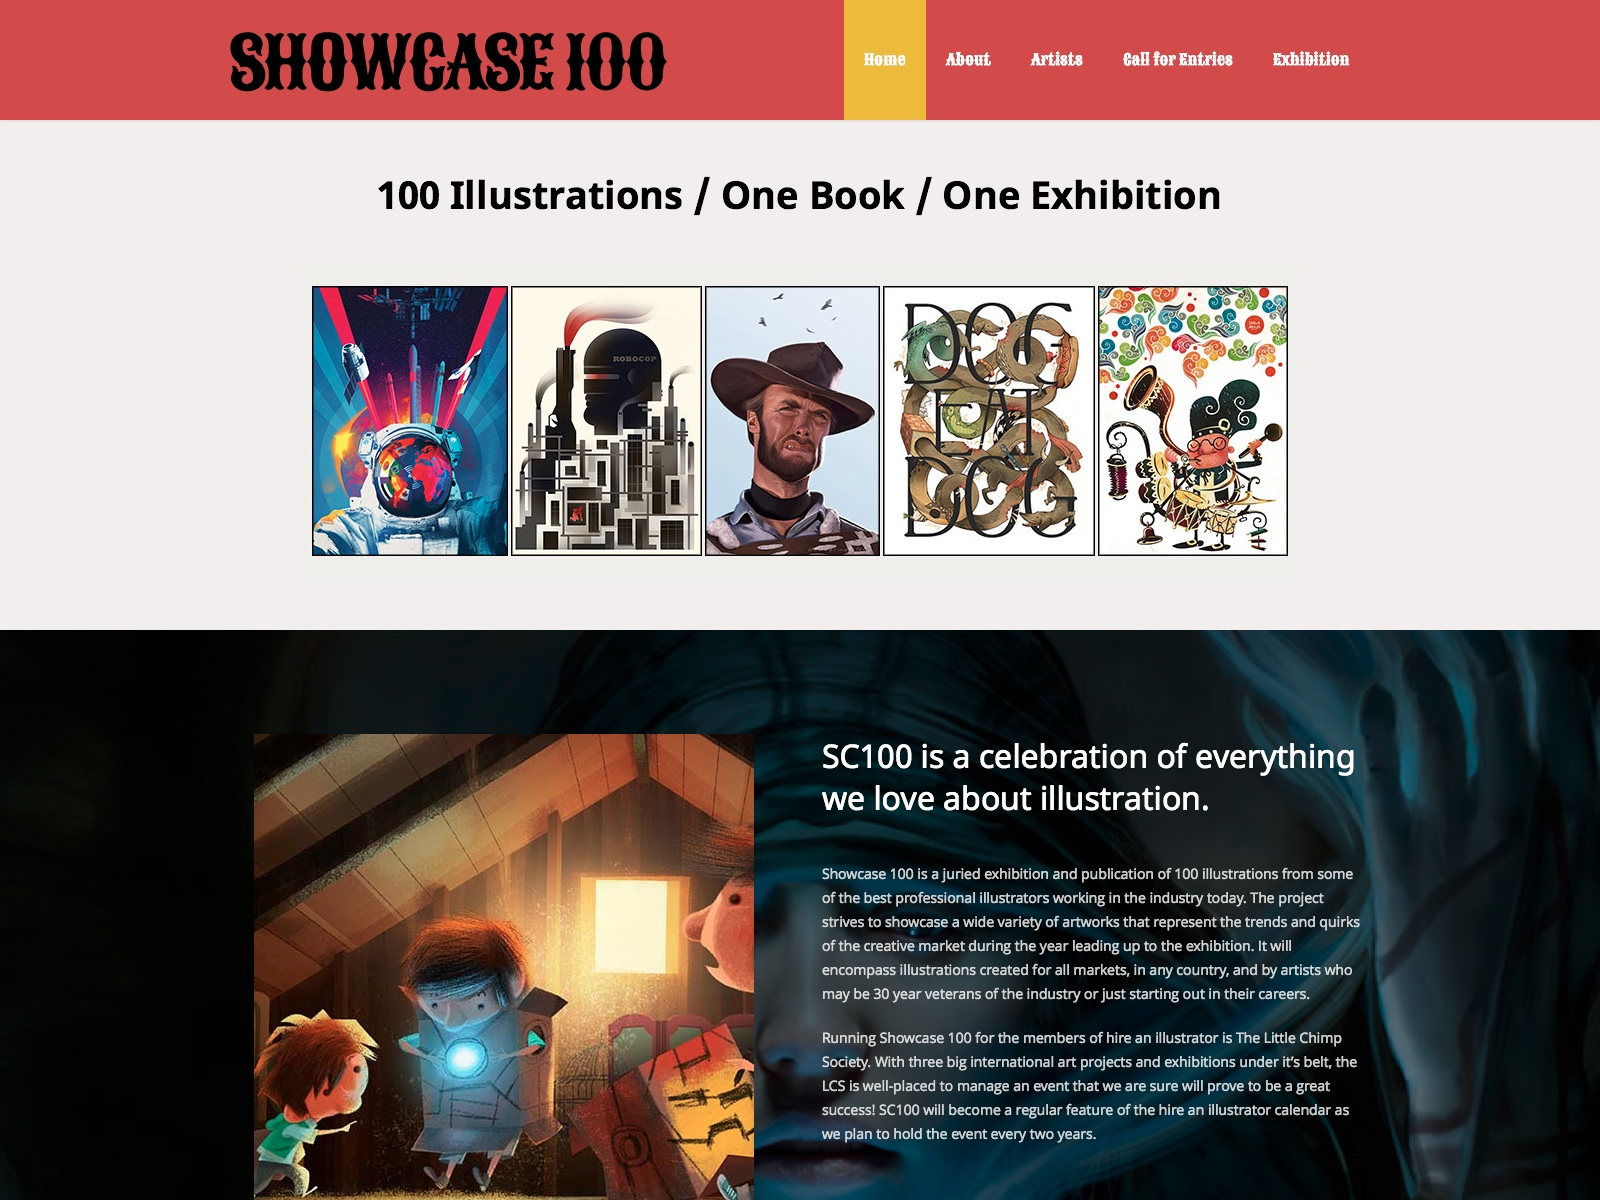 Showcase 100 - An Illustration Project, Exhibition & Book